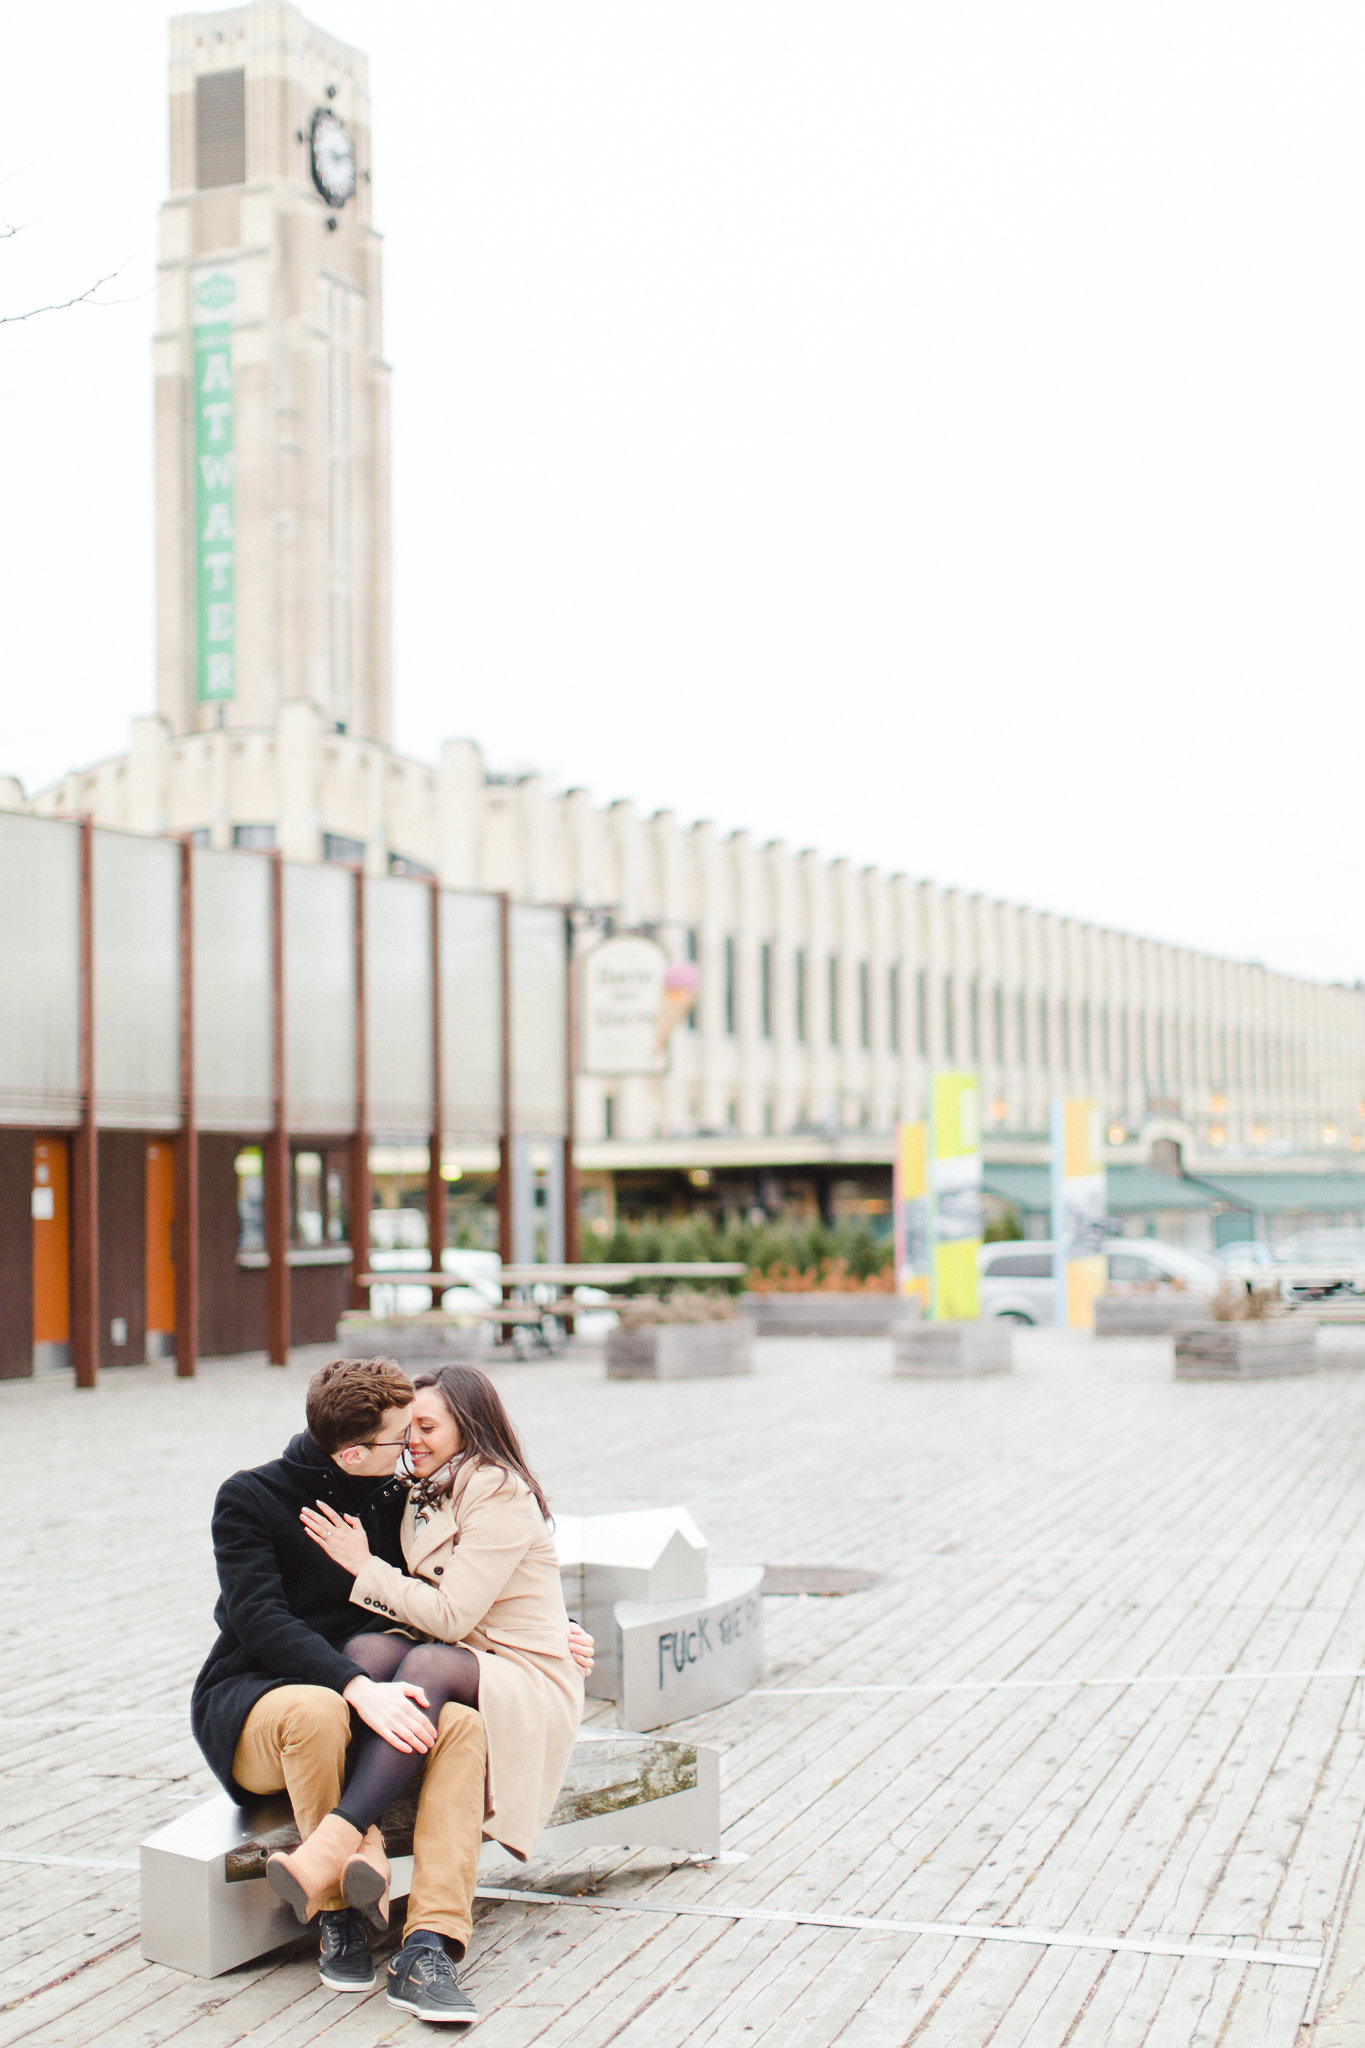 photographe-montreal-seance-fiancailles-lisa-renault-photographie-montreal-photographer-engagement-session-9